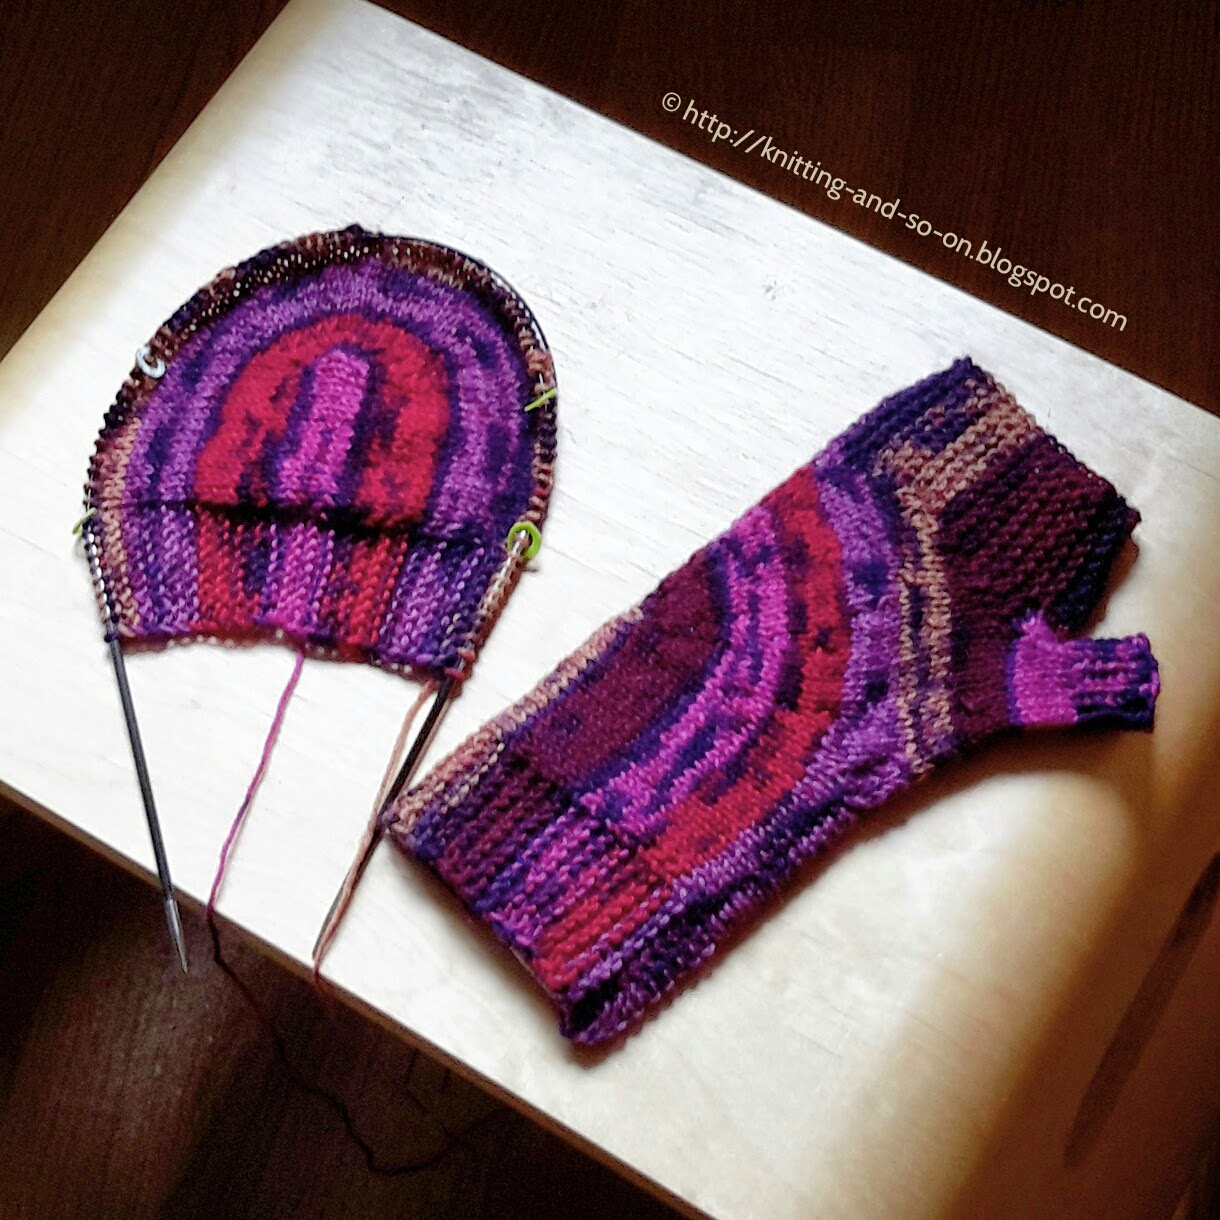 Fingerless Gloves - Knitting Construction